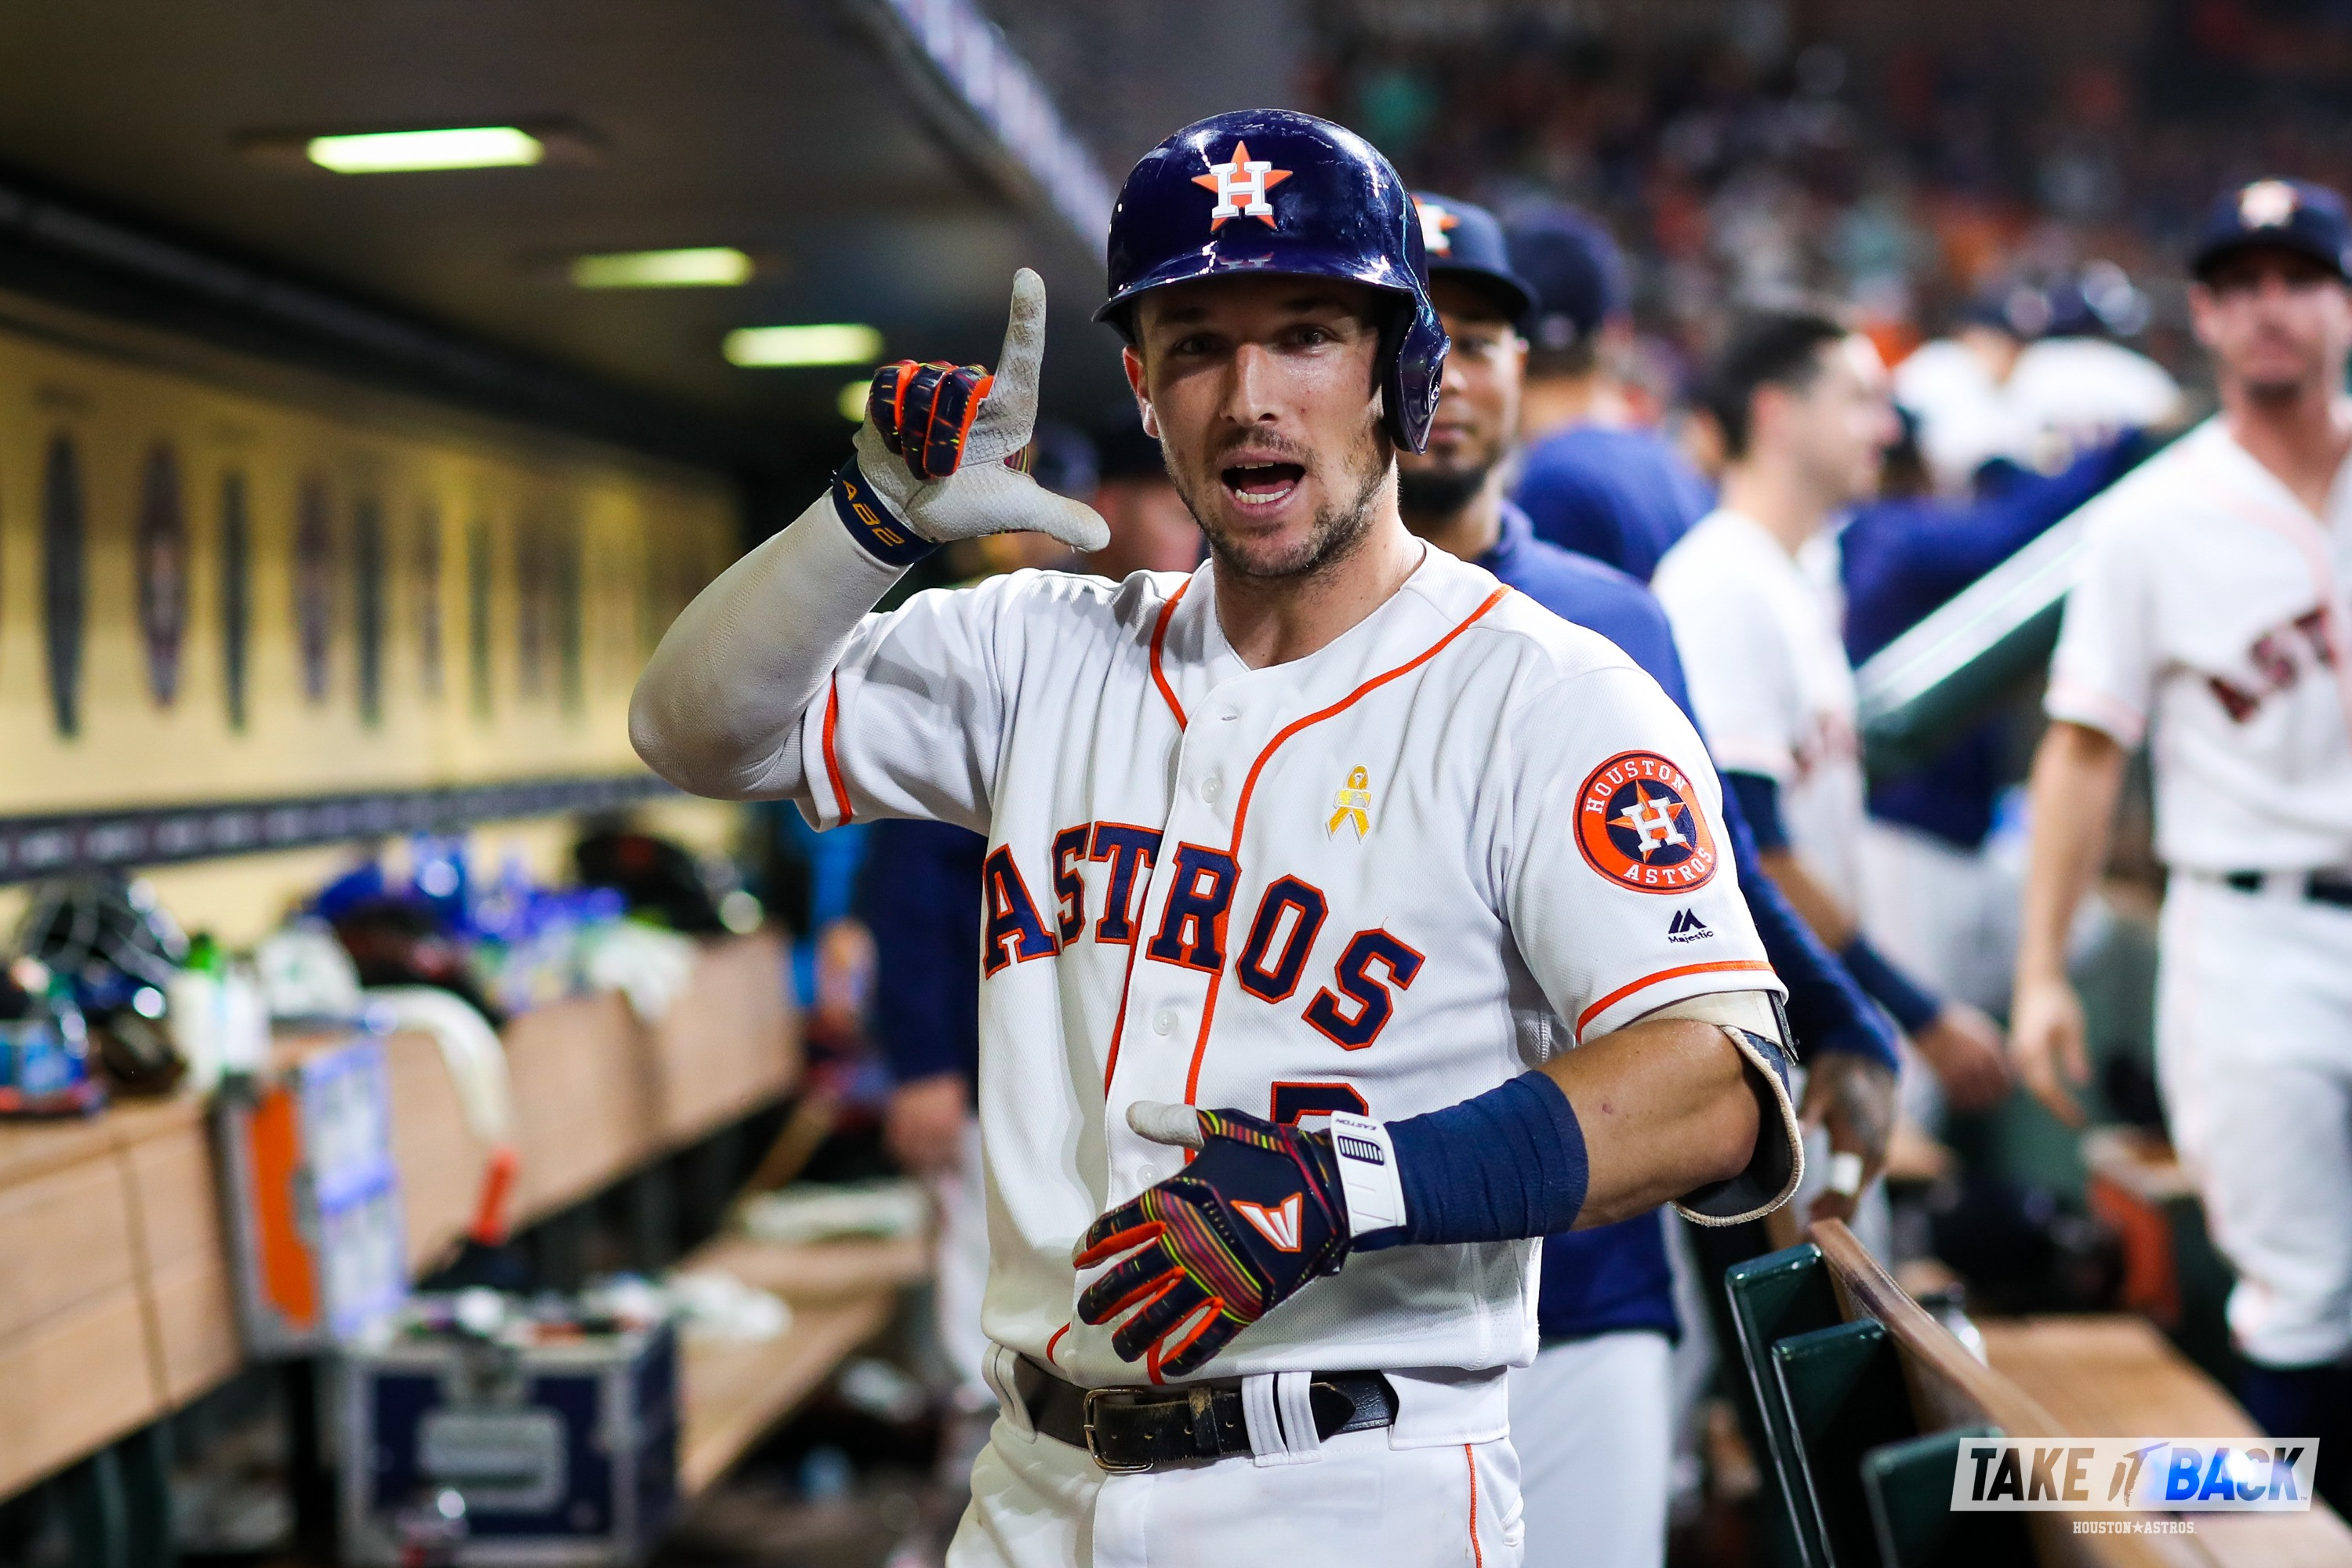 Astros 2019 >> Houston Bbwaa Announces 2019 Awards Astros Mission Control